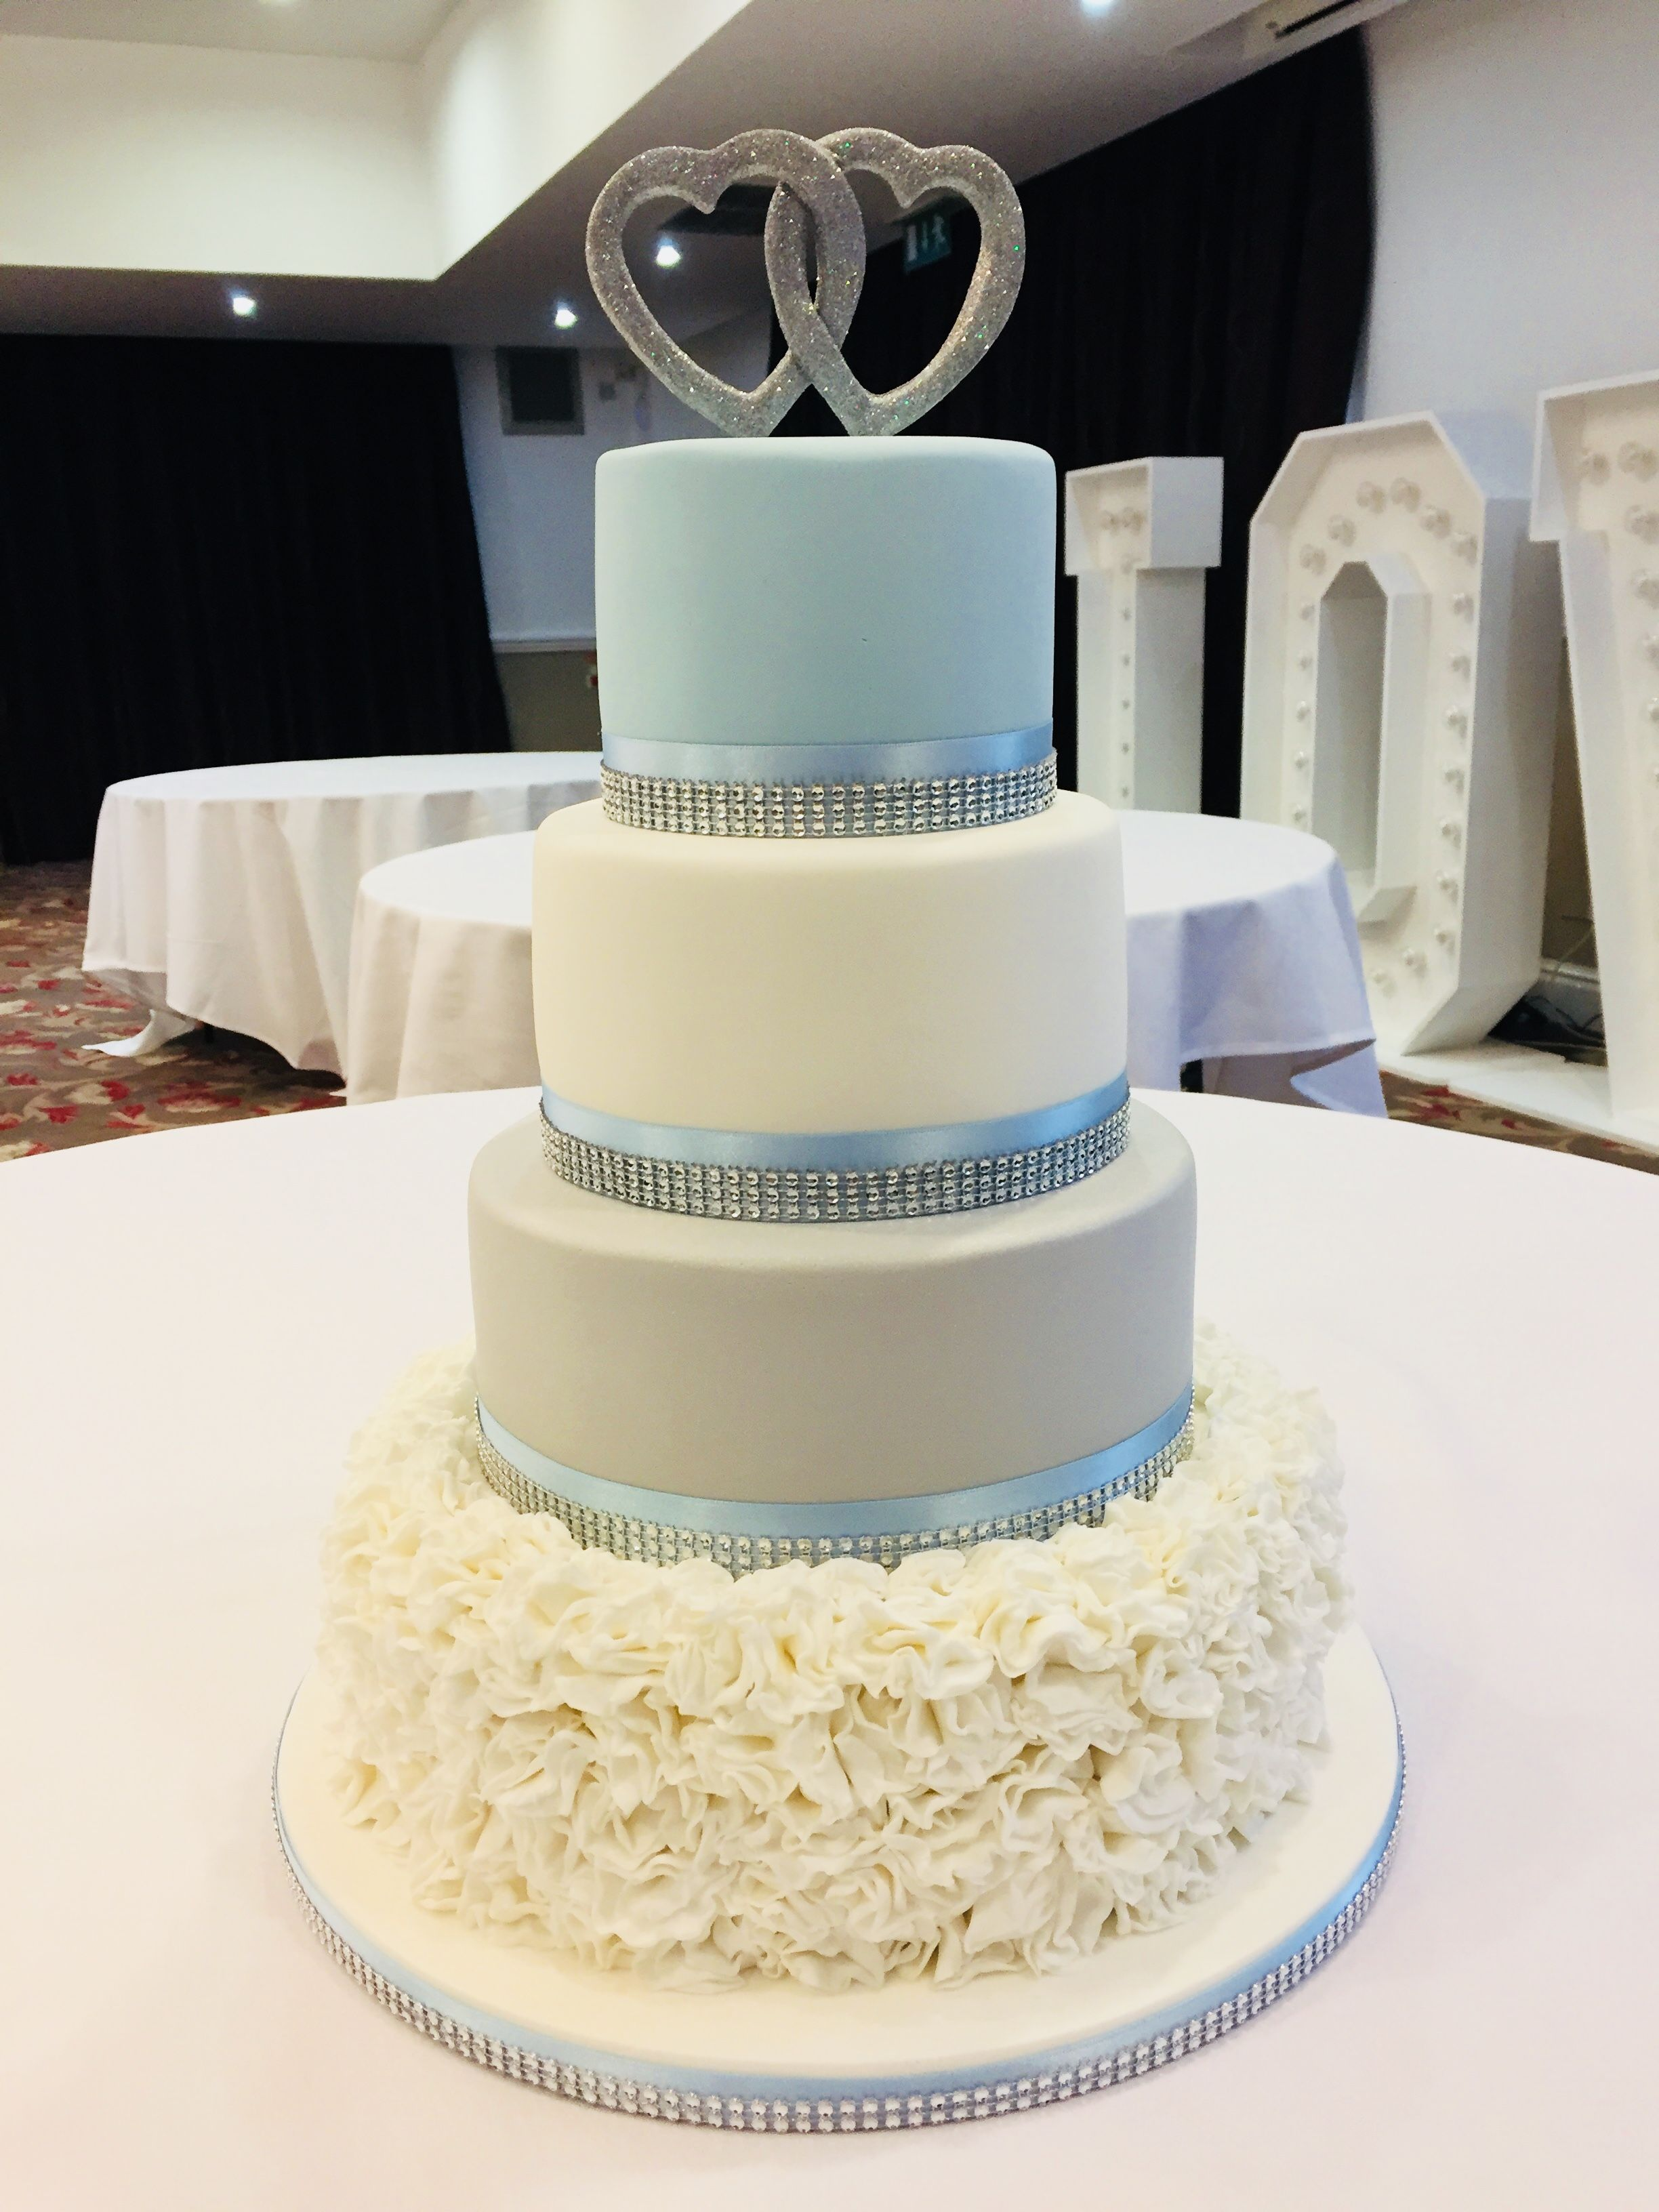 Baby blue and silver wedding cake | My cakes | Pinterest | Wedding ...